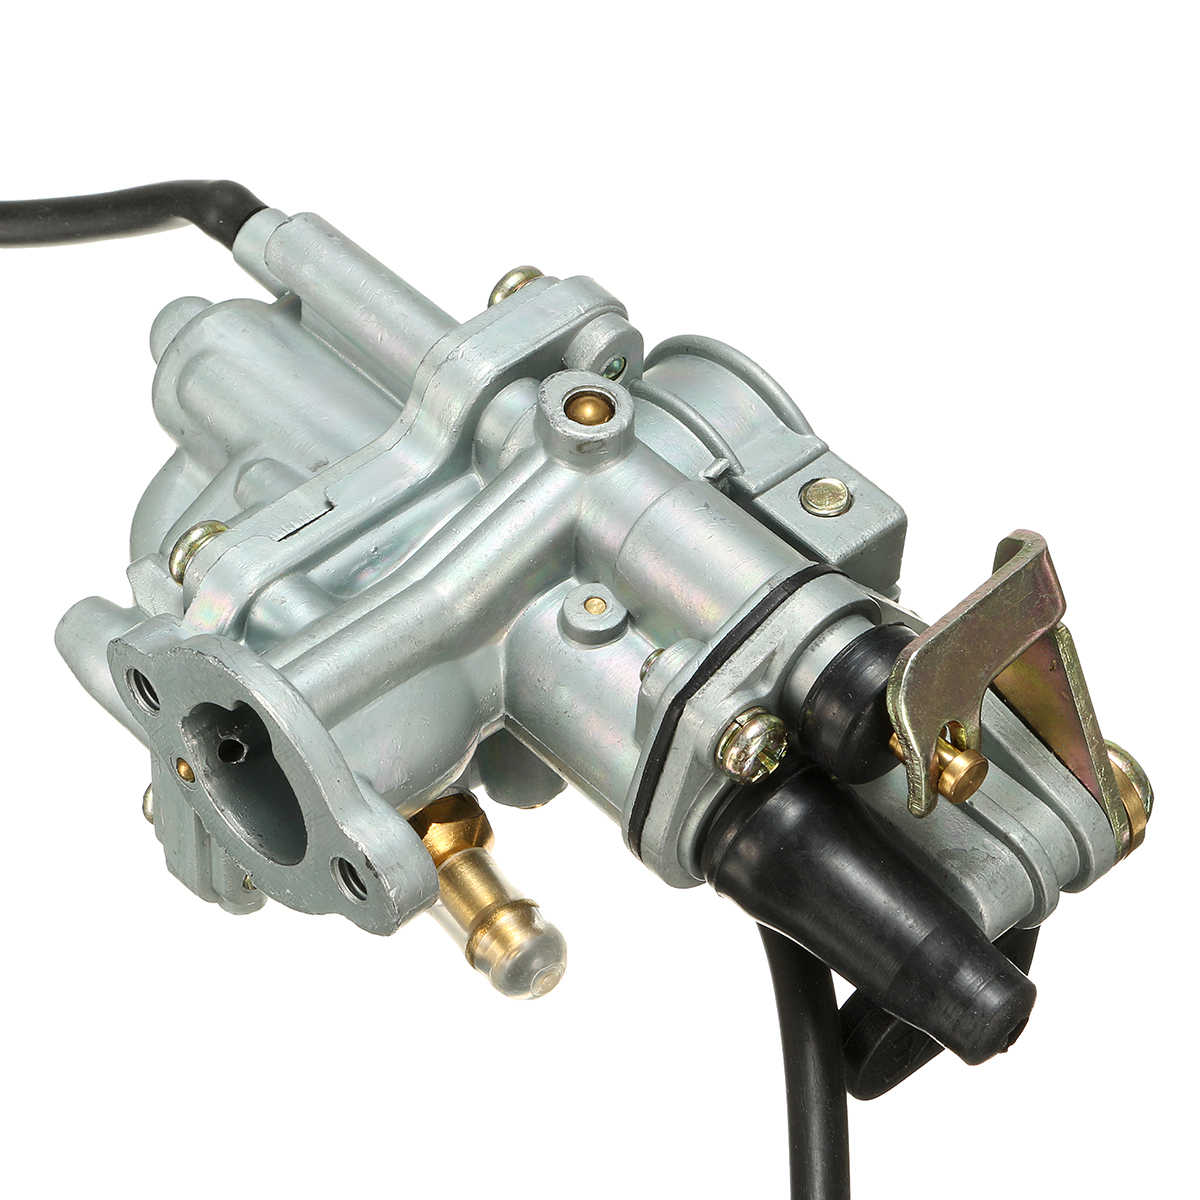 Carburetor Carb For Suzuki JR50 Dirt Pit Bike Scooter 1978-2006